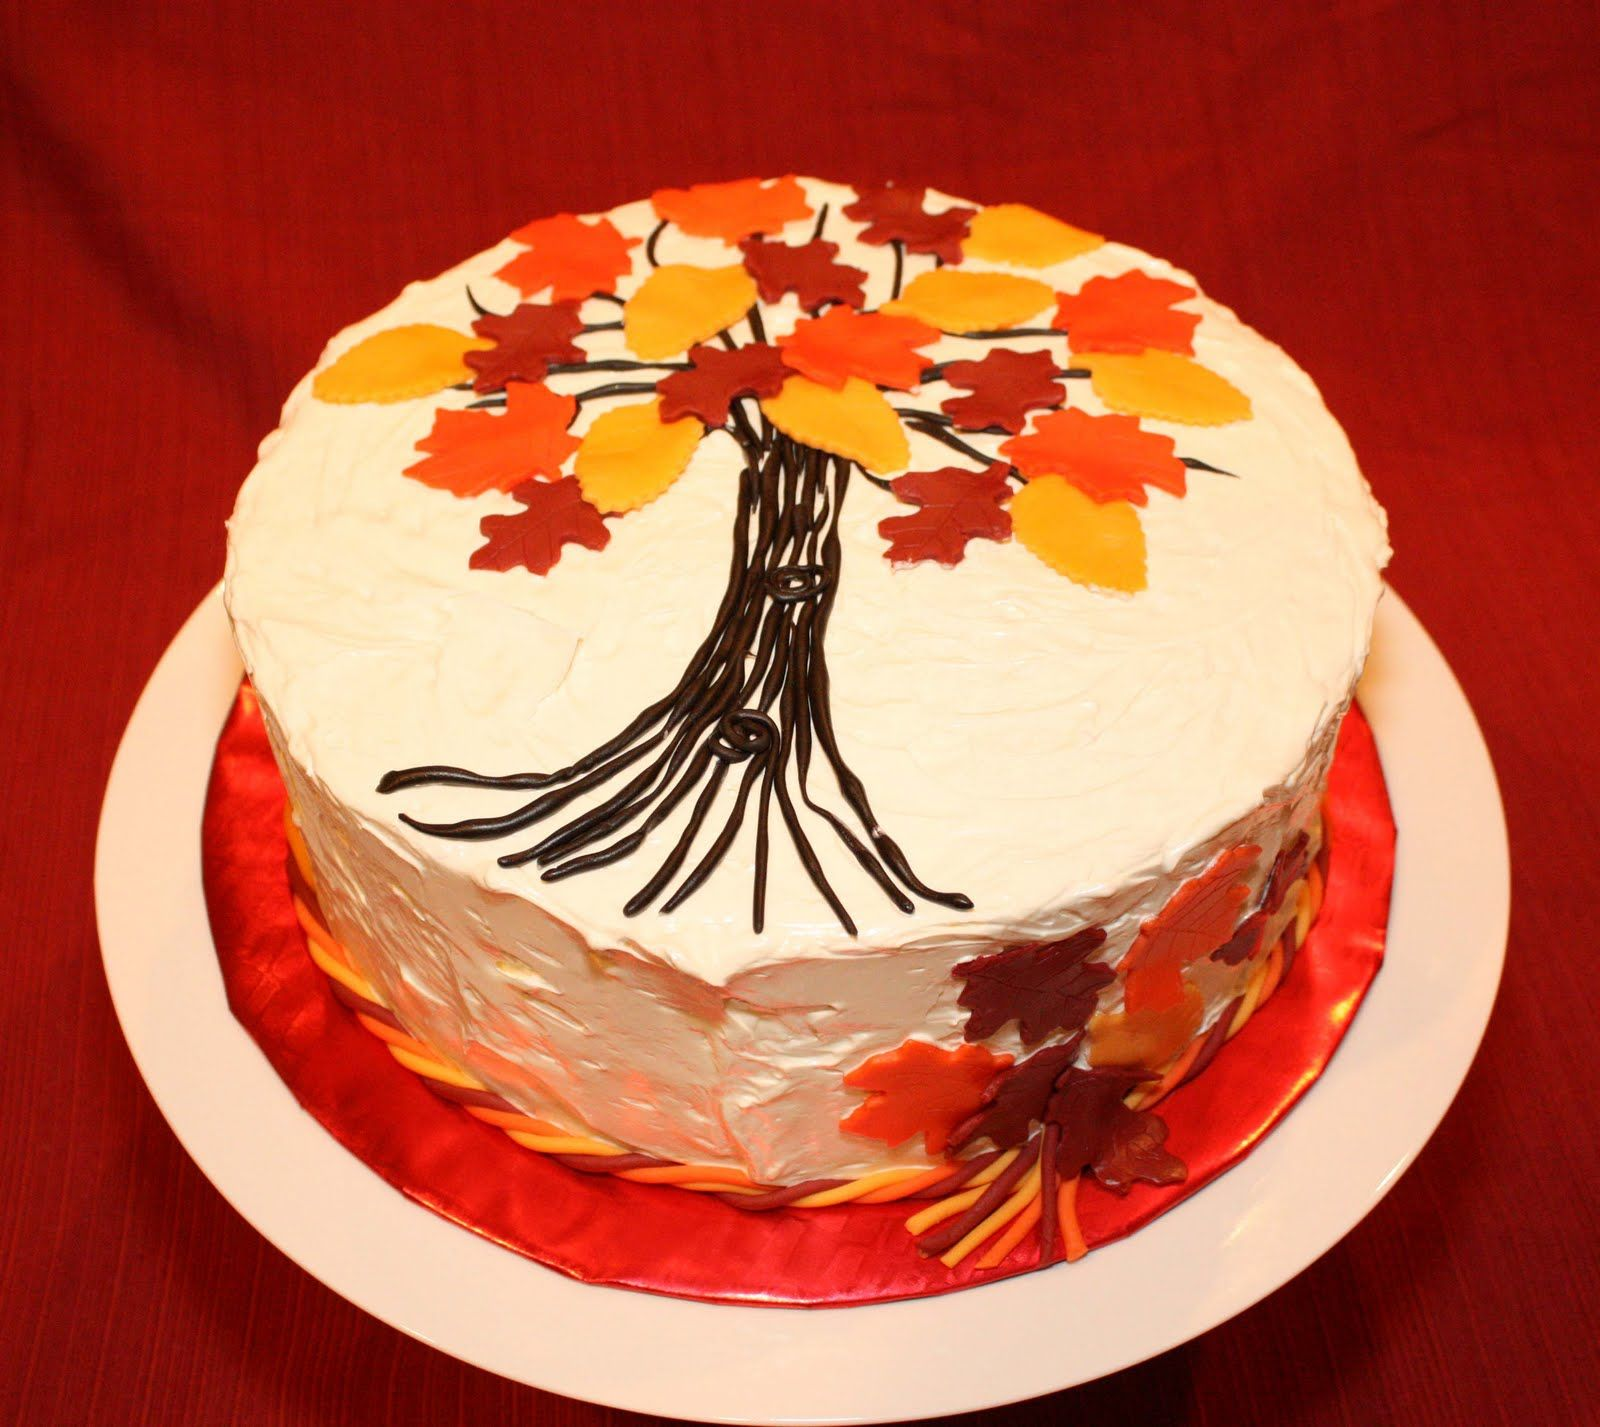 fall cakes Here are some of our favorite Fall Cakes decorating